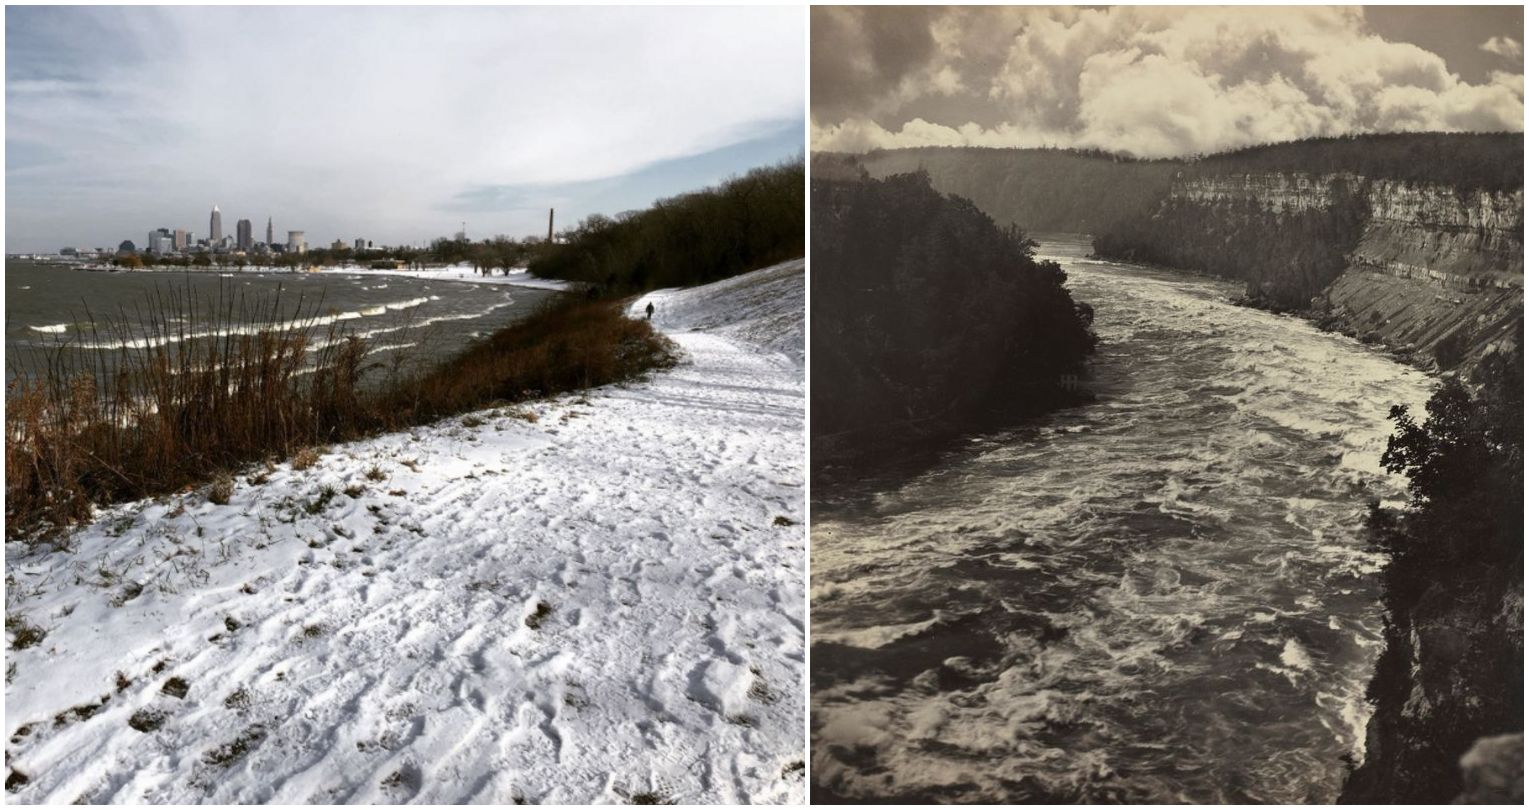 a snowy path compared with a river